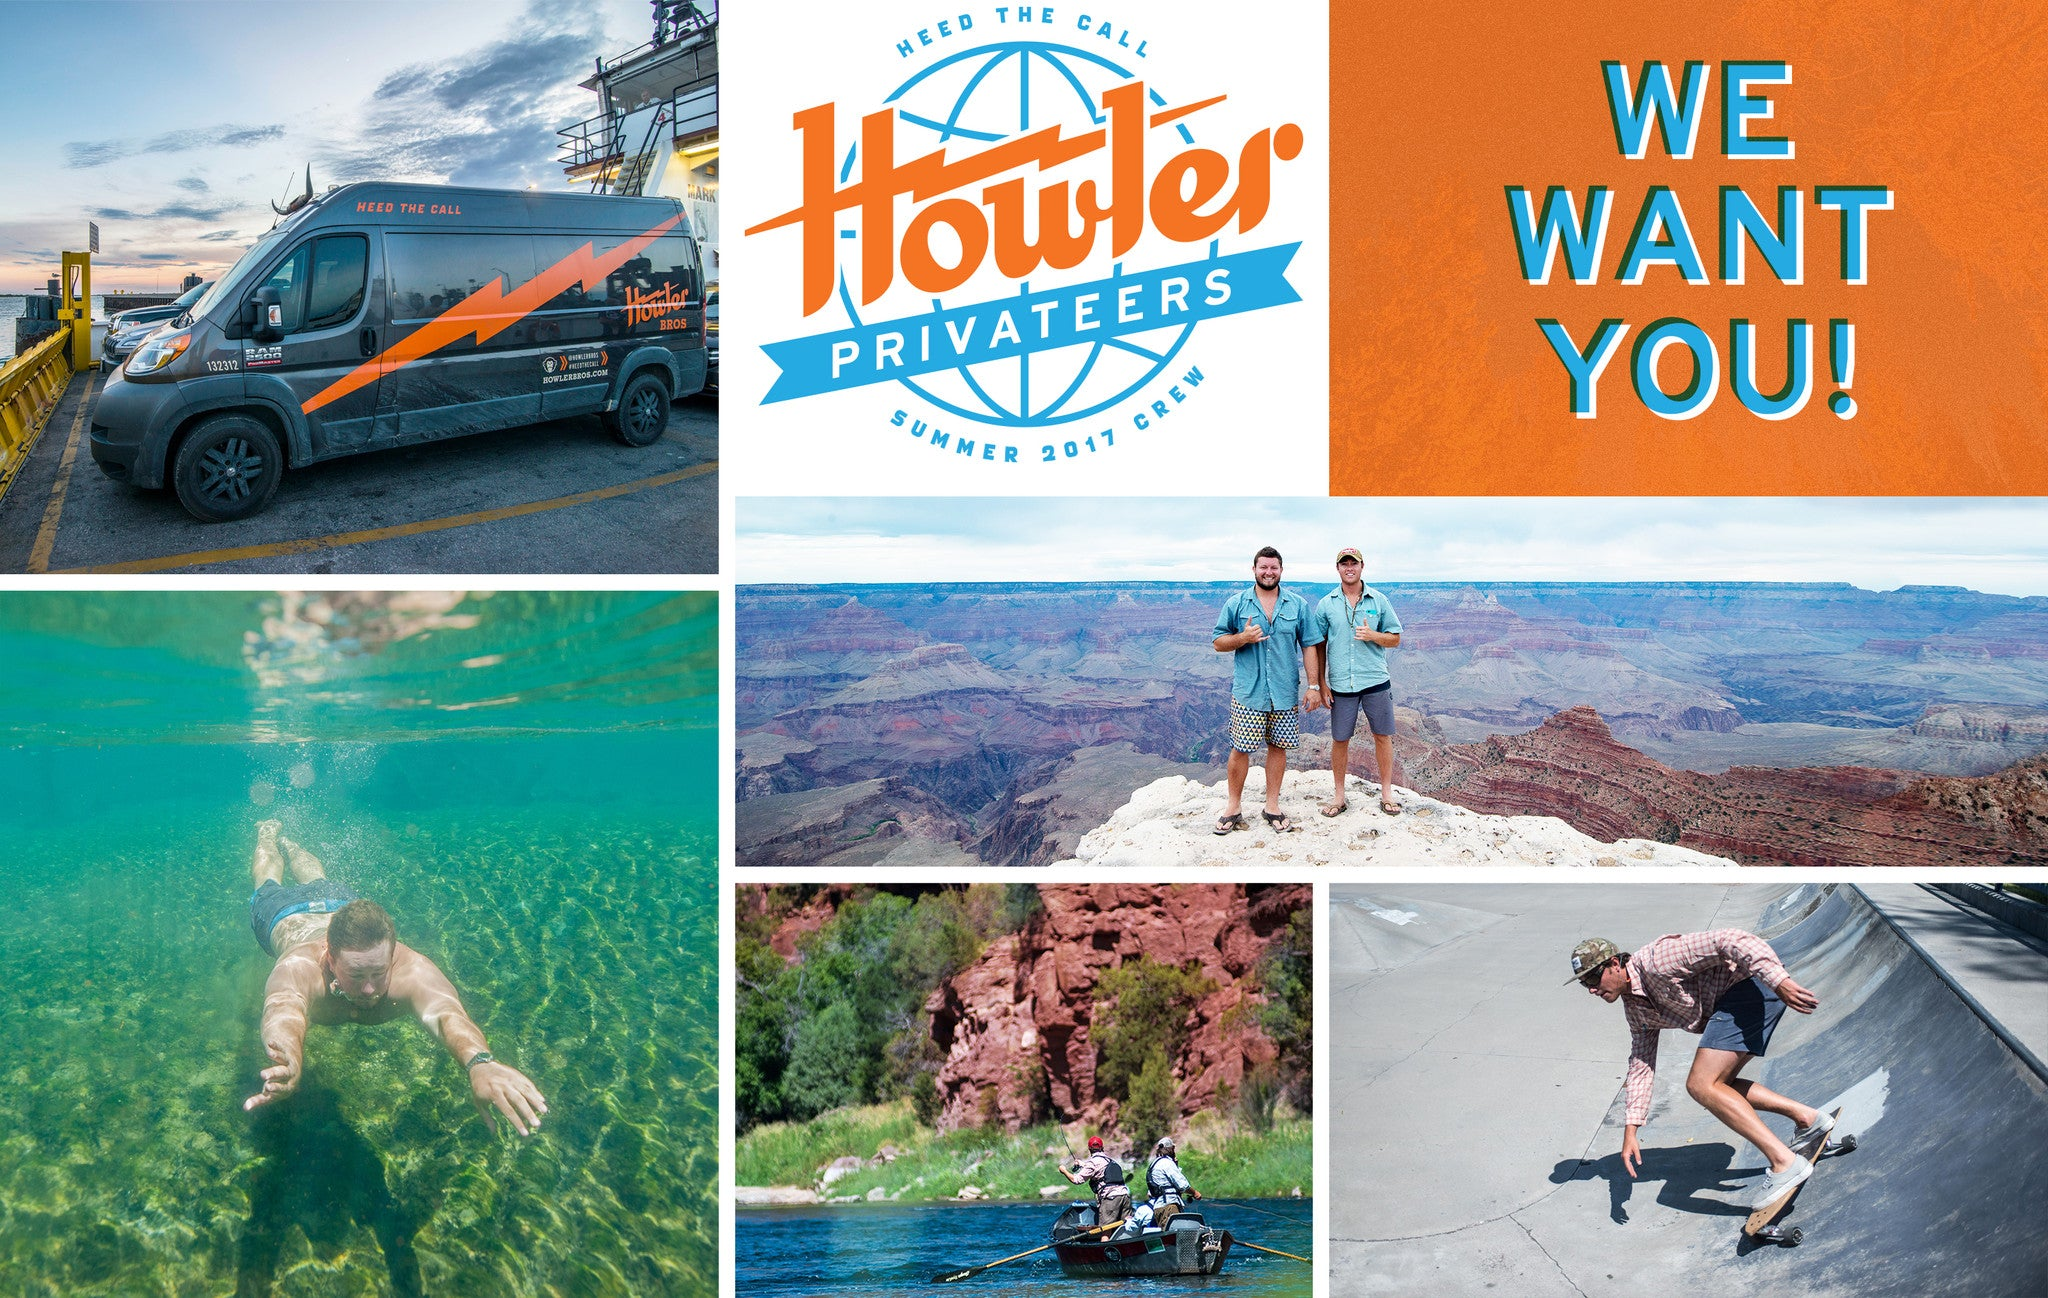 34ae415c0ce5 The Howler Privateers program is back for 2017! And this year we have even  more in store for the lucky winners. Dubbed by many as